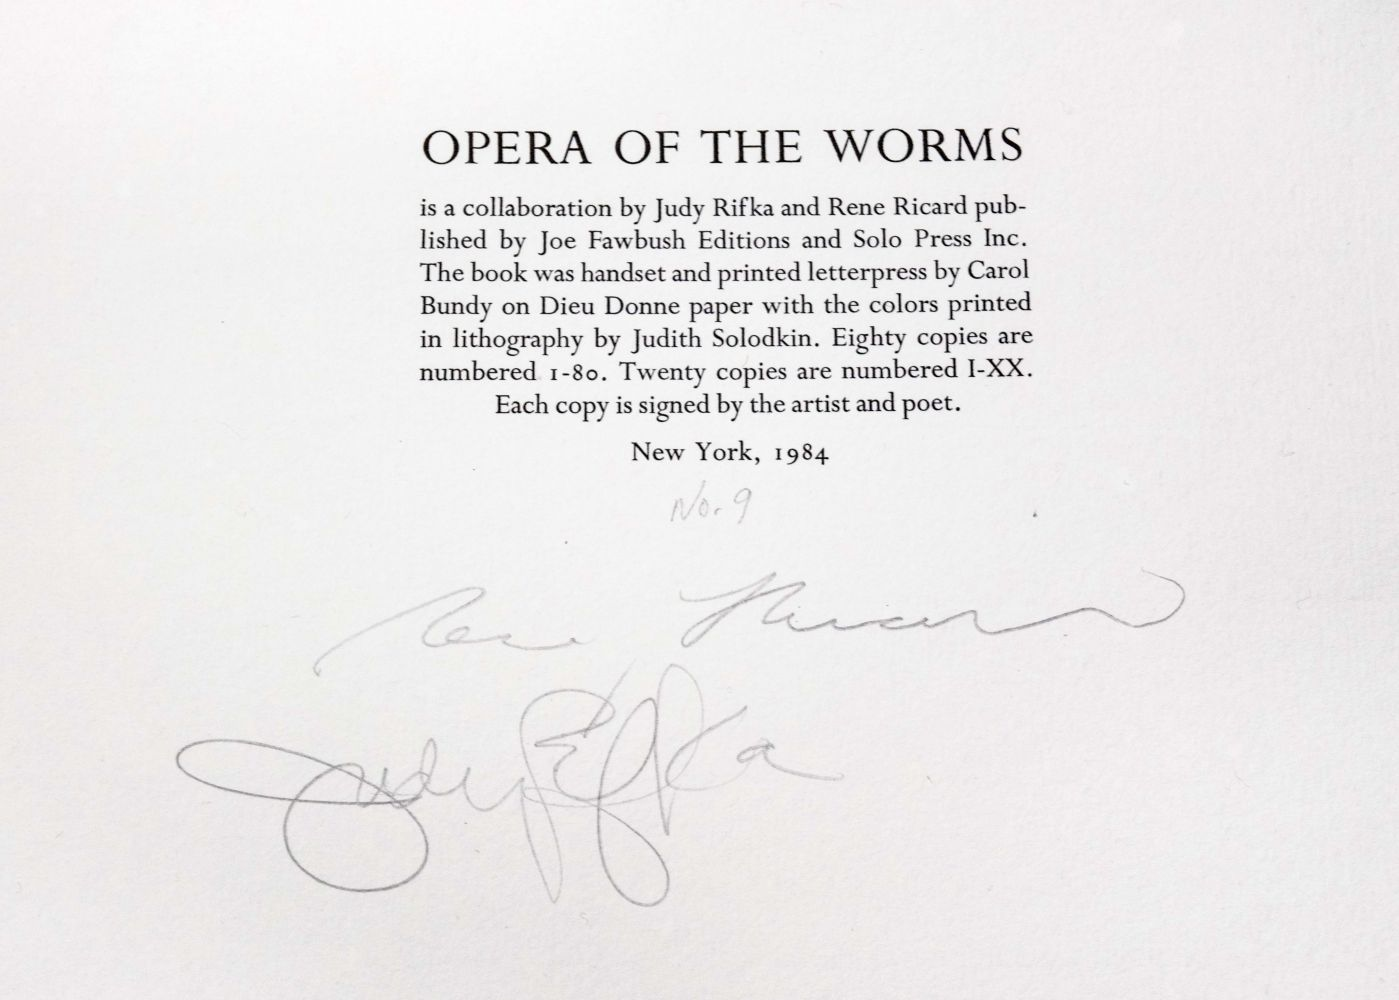 Judy Rifka and Rene Ricard Opera of the Worms, 1984